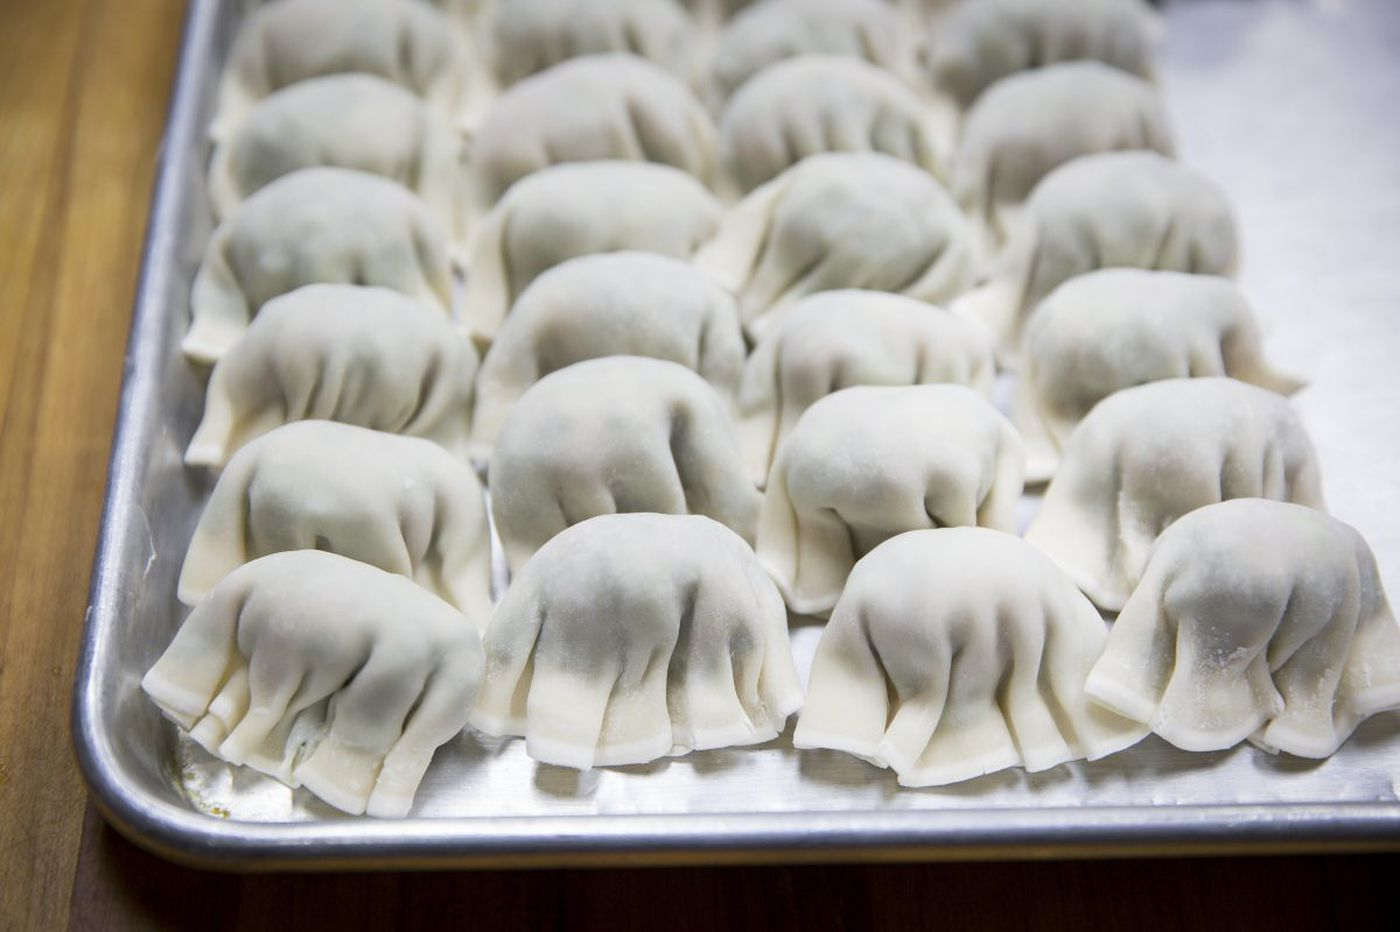 Celebrating Chinese New Year: Dumplings for wealth and noodles for a long life